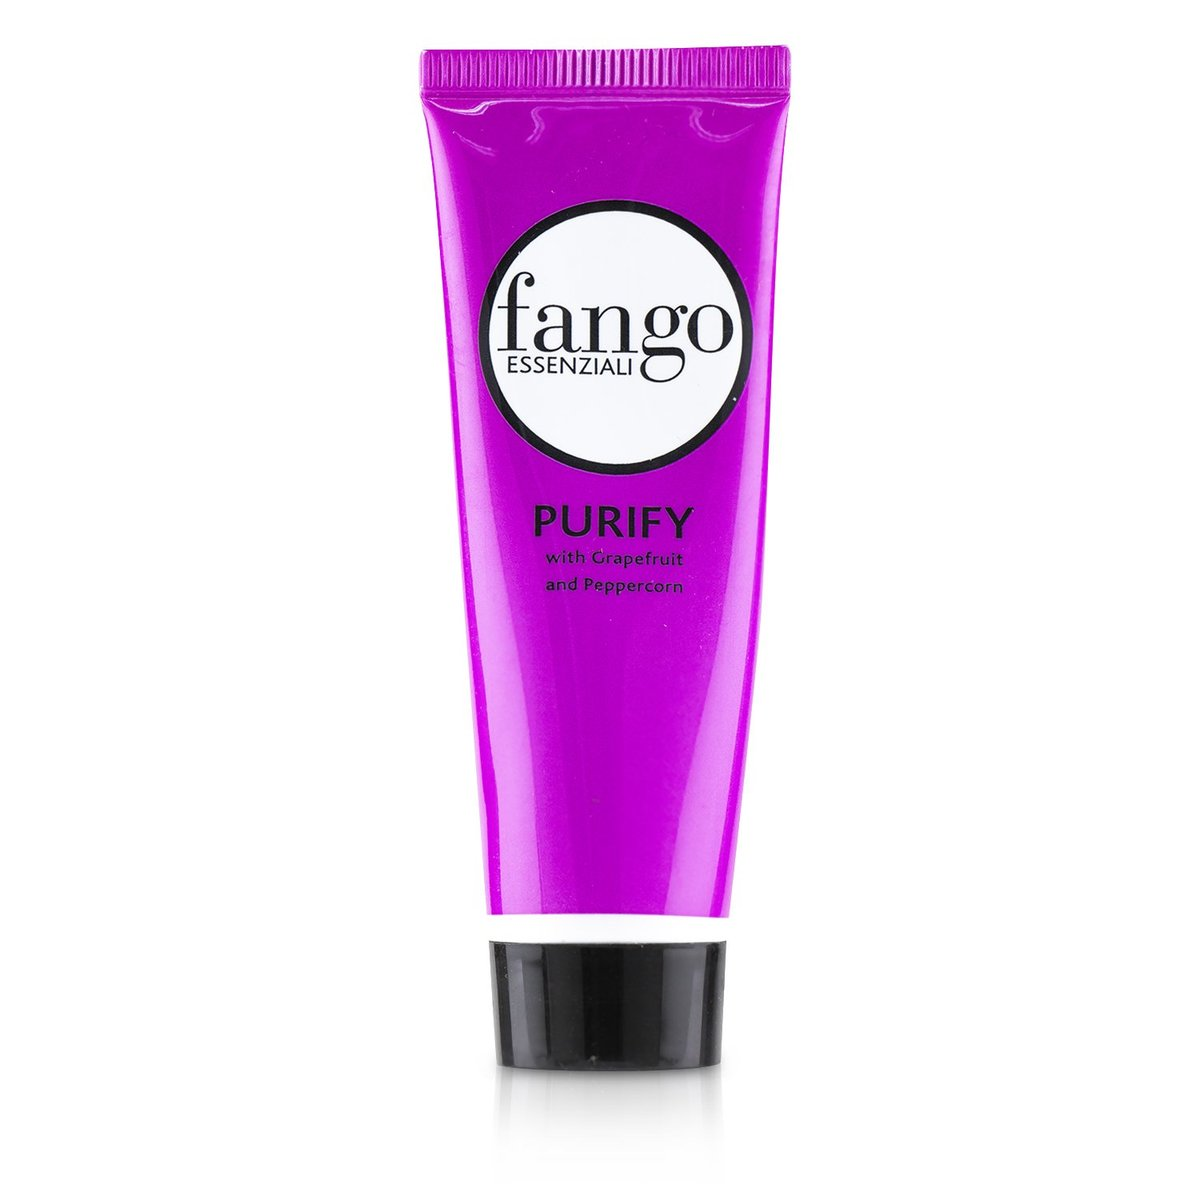 Fango Essenziali Purify Mud Mask with Grapefruit & Peppercorn (Travel Size)